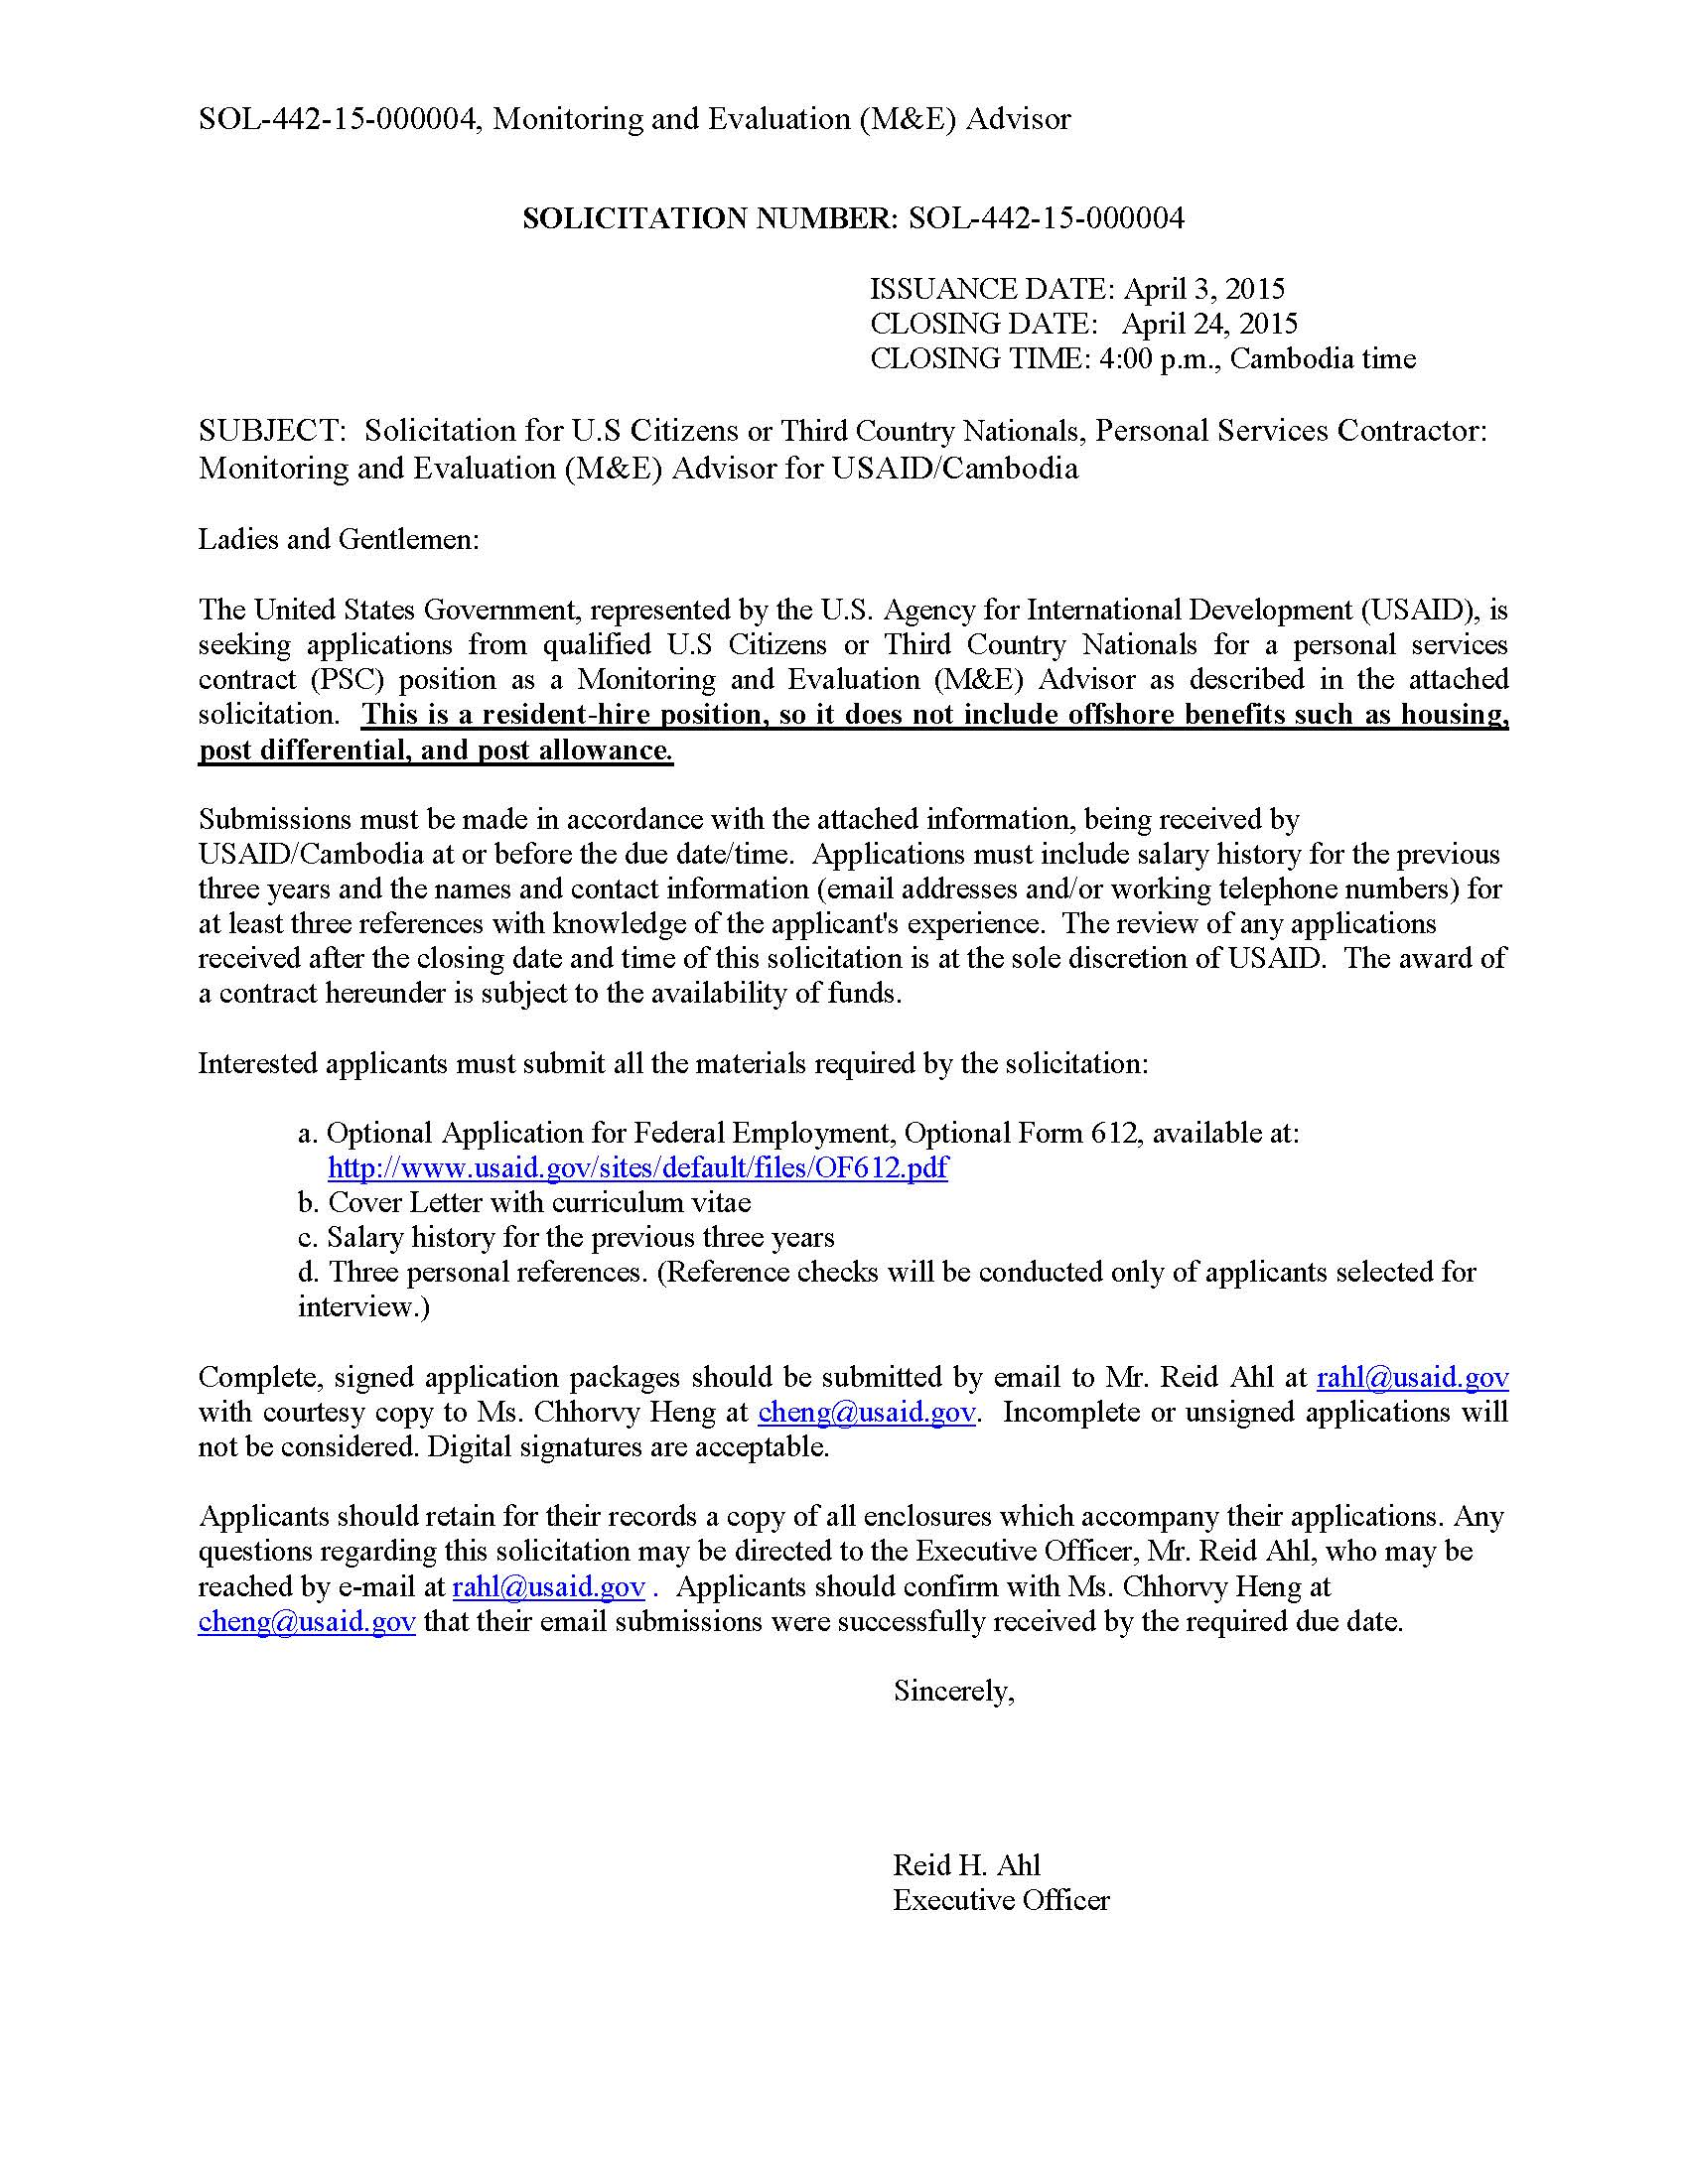 Sample Cover Letter Usaid  Fast Online Help